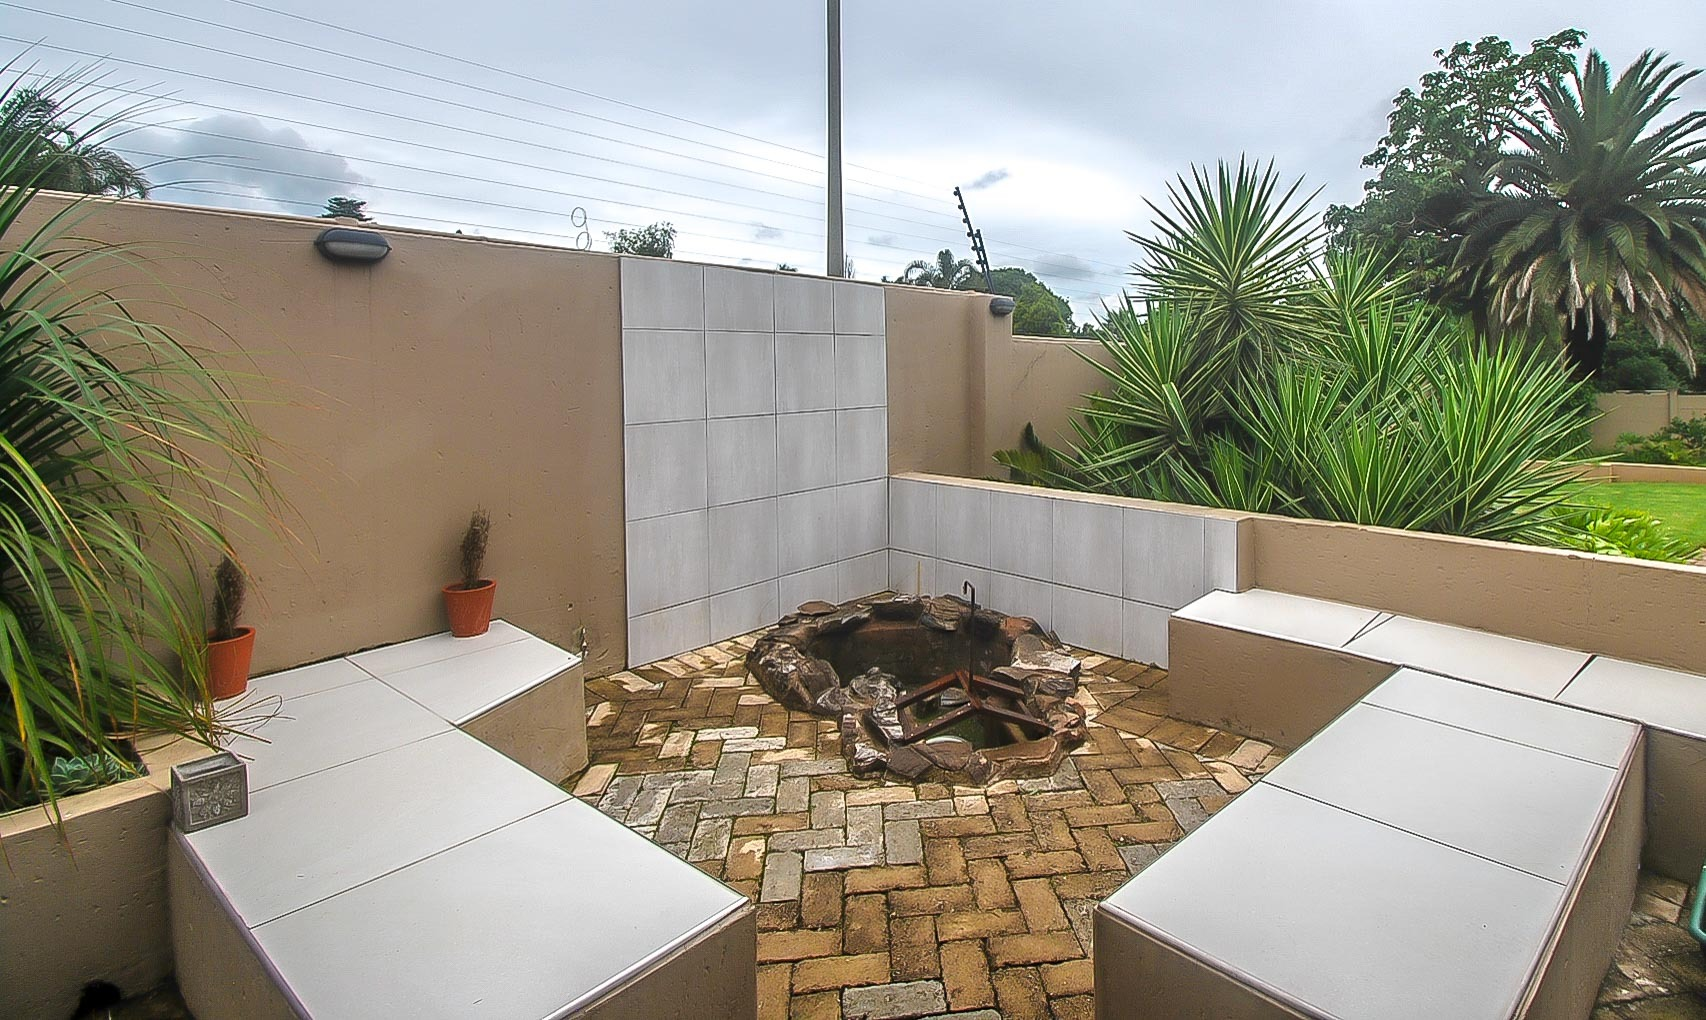 5 Bedroom House For Sale in Weltevreden Park